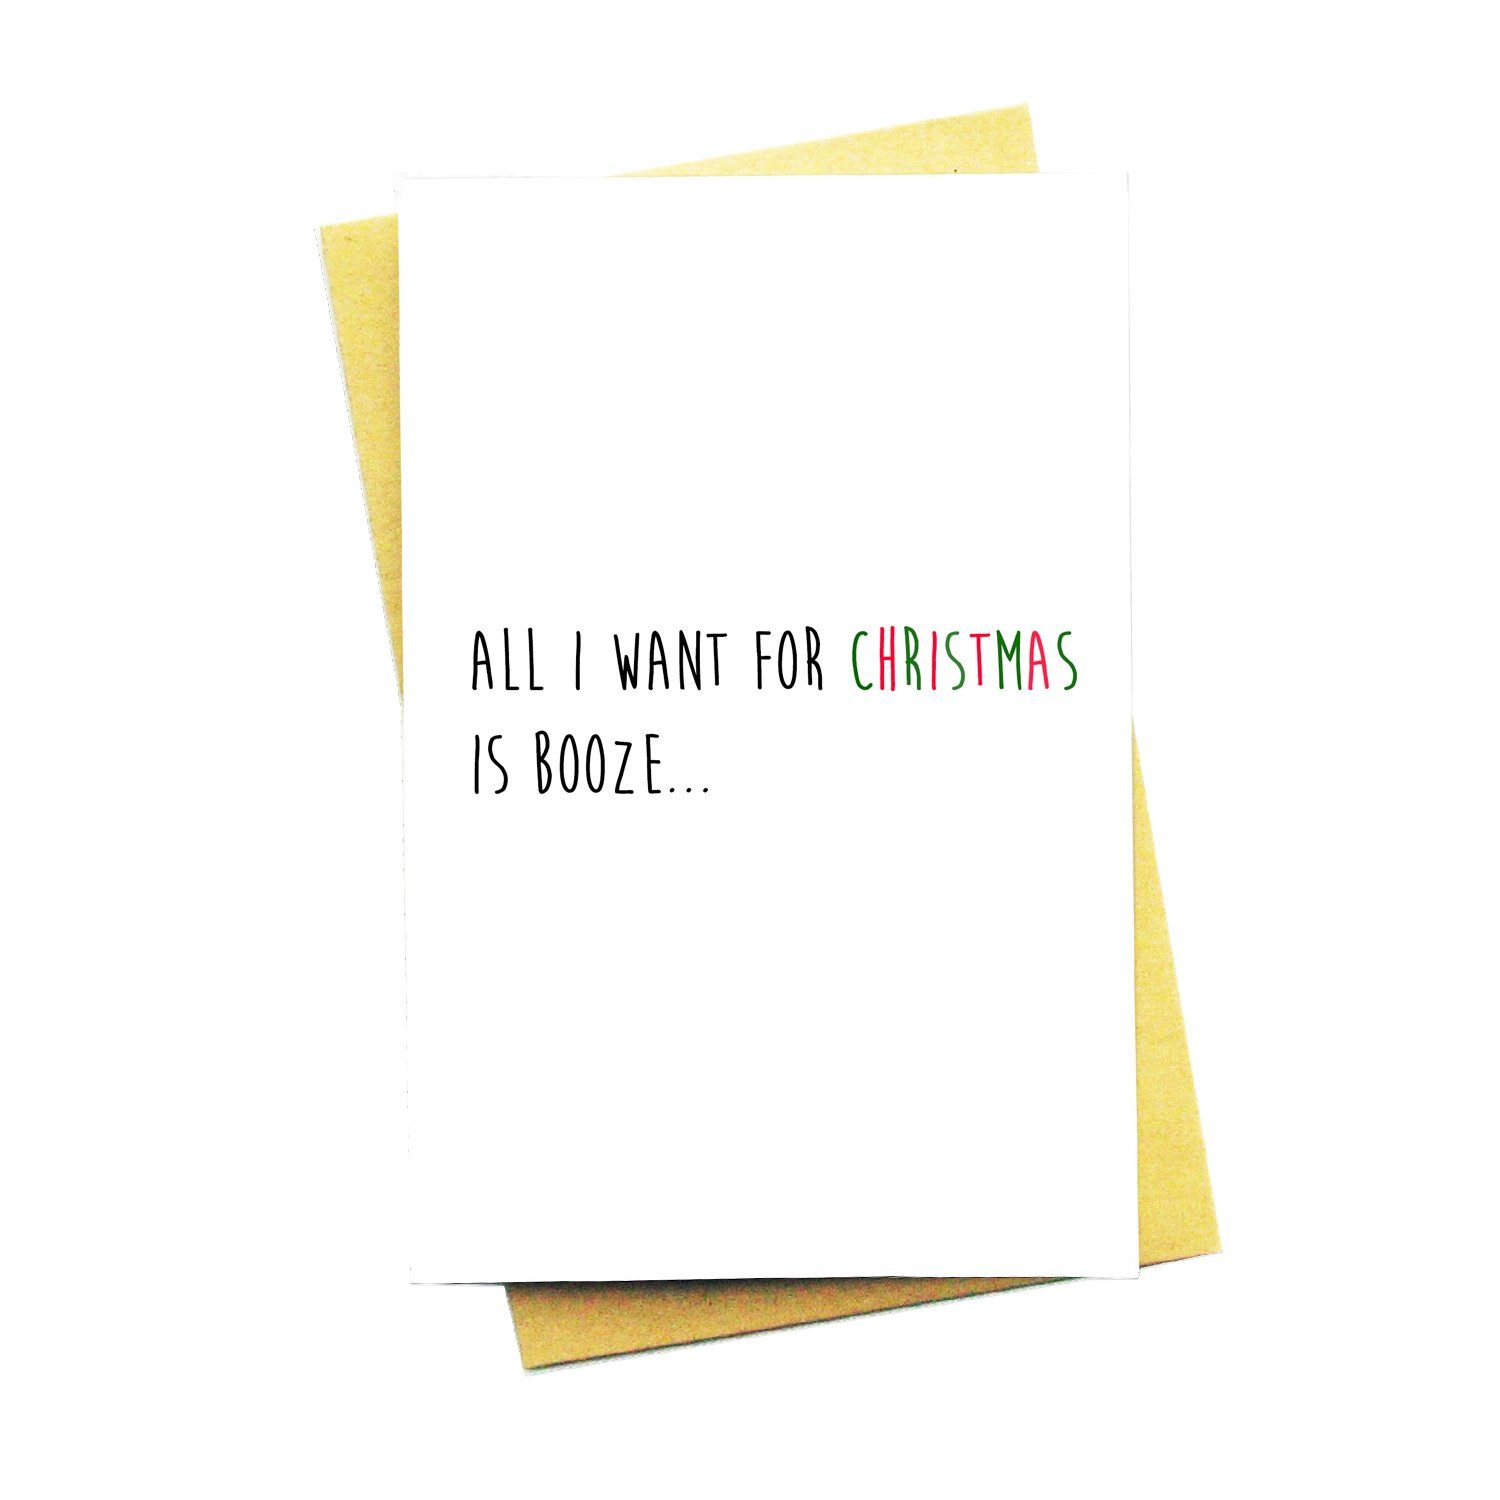 All I Want For Christmas Is…Booze Greeting Card - Christmas Cards - Nocturnal Paper - Naiise